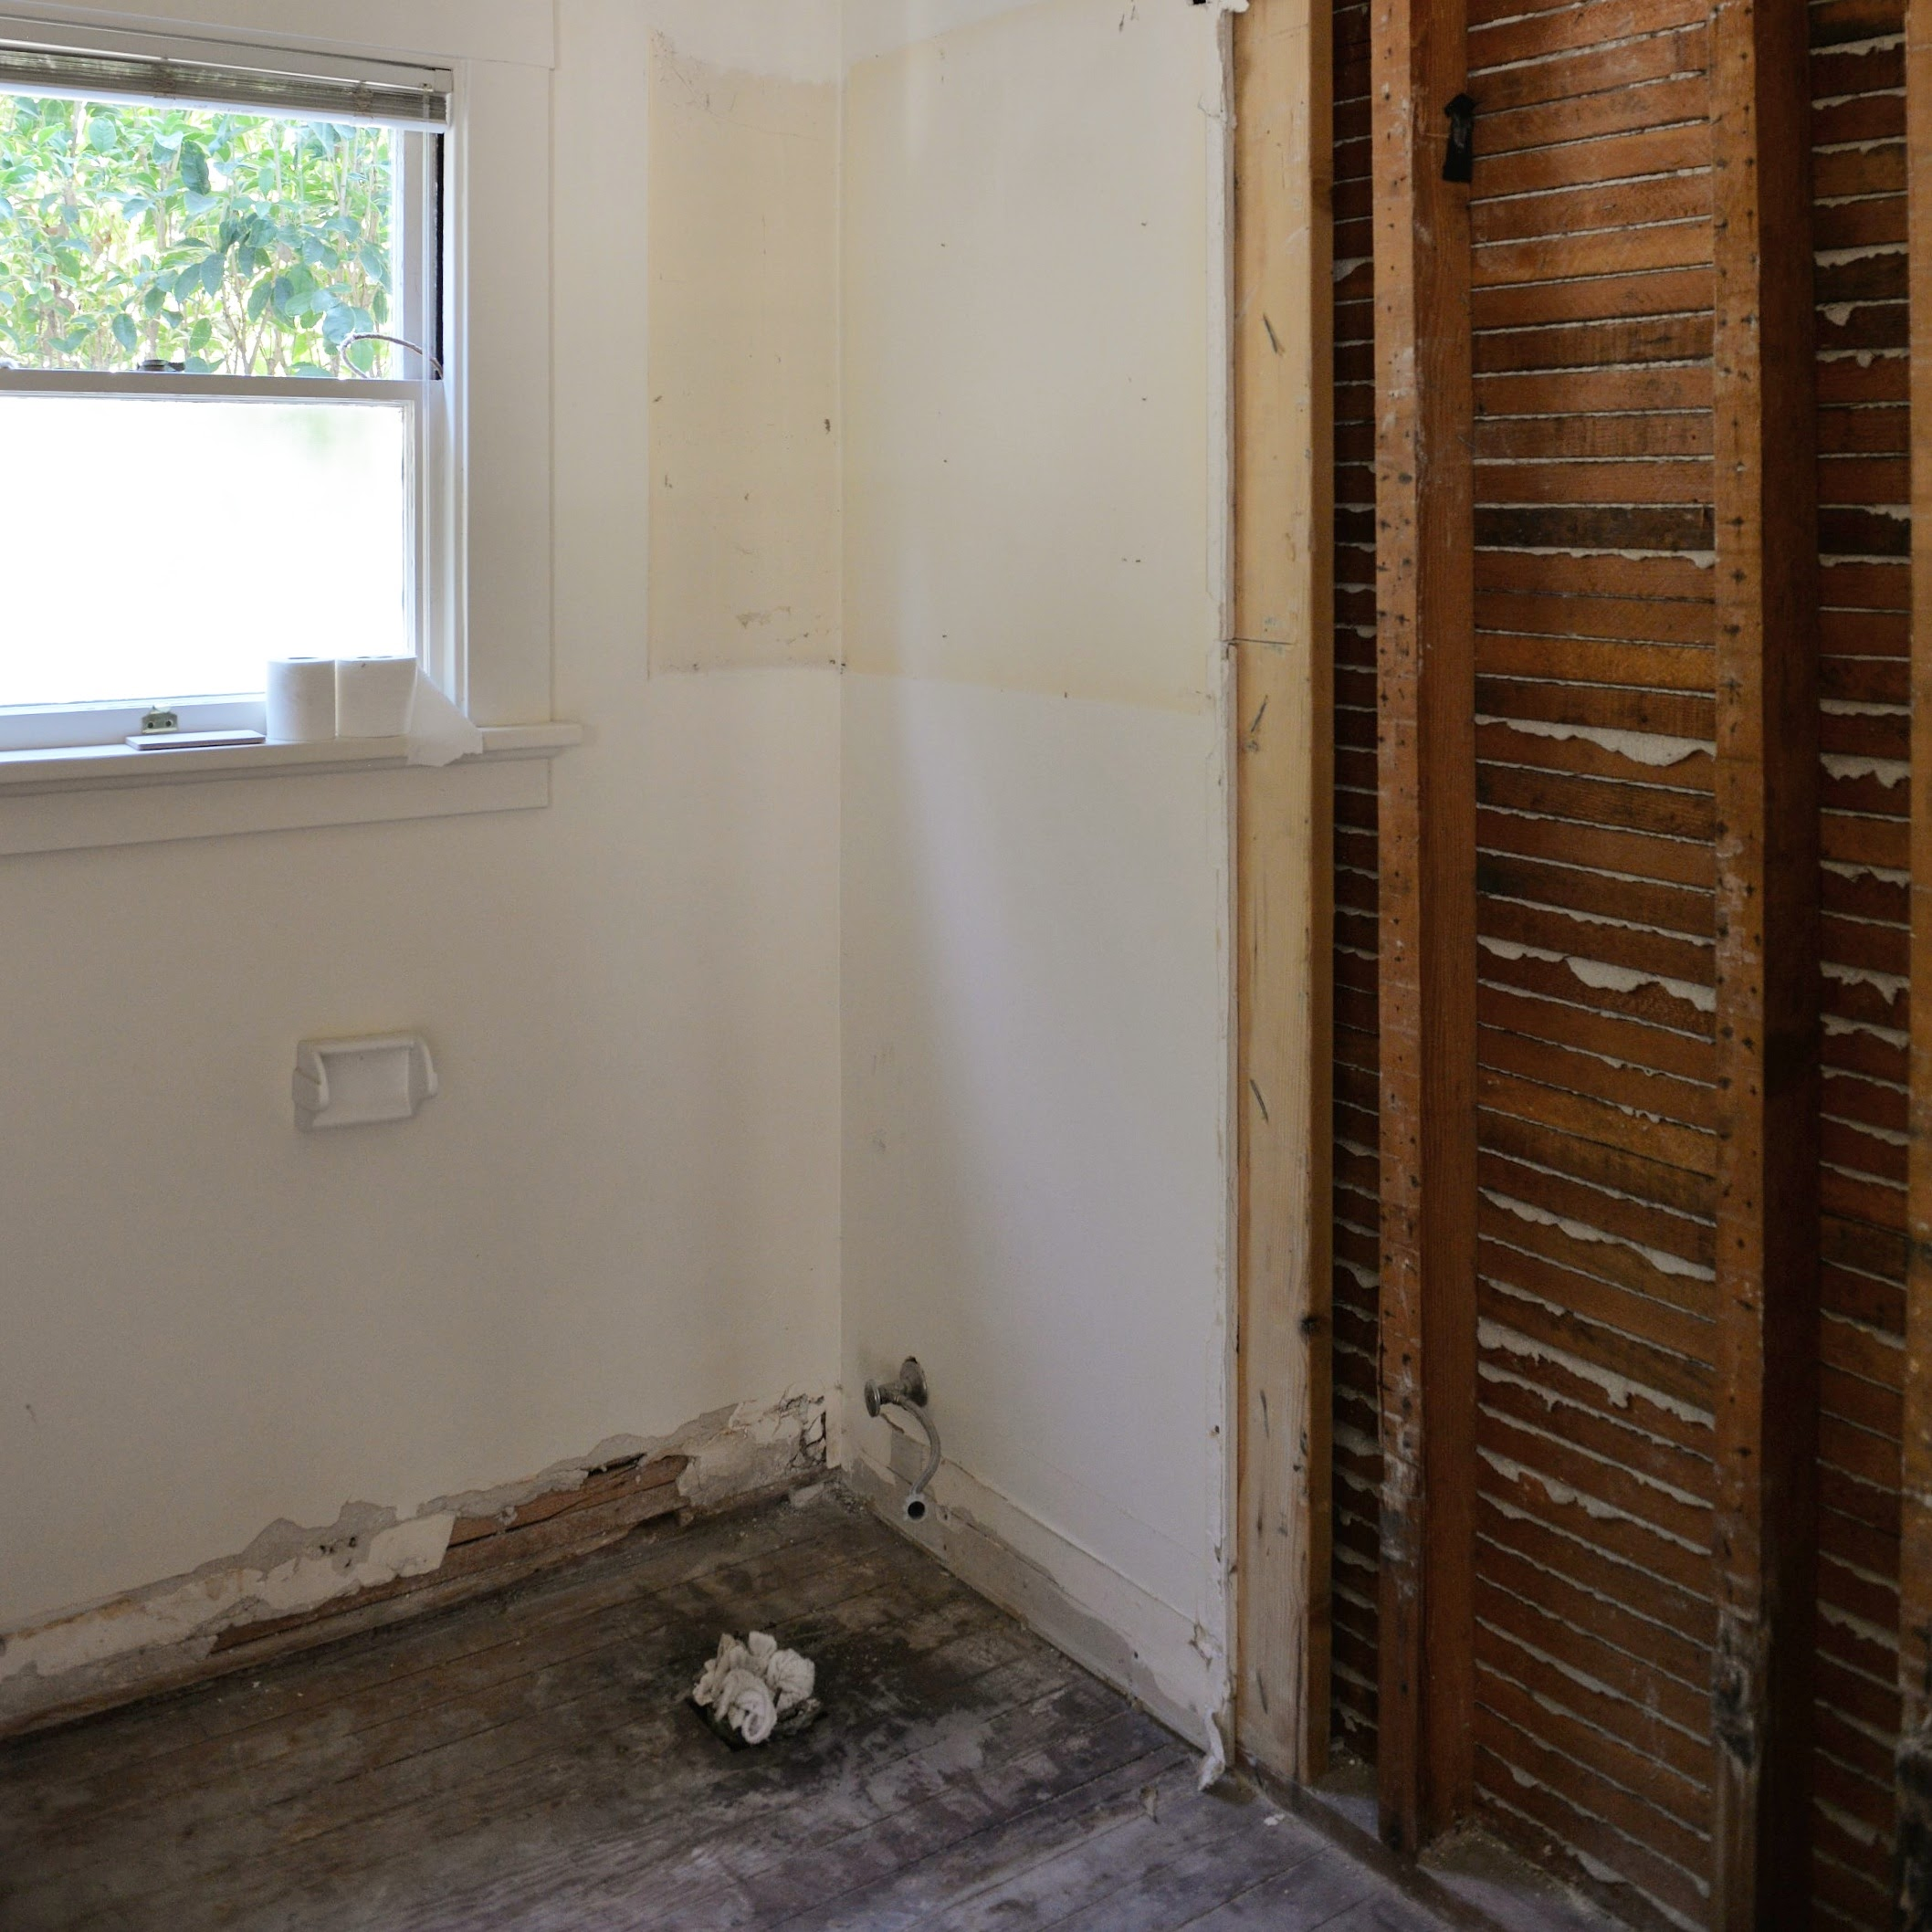 The once and future bathroom